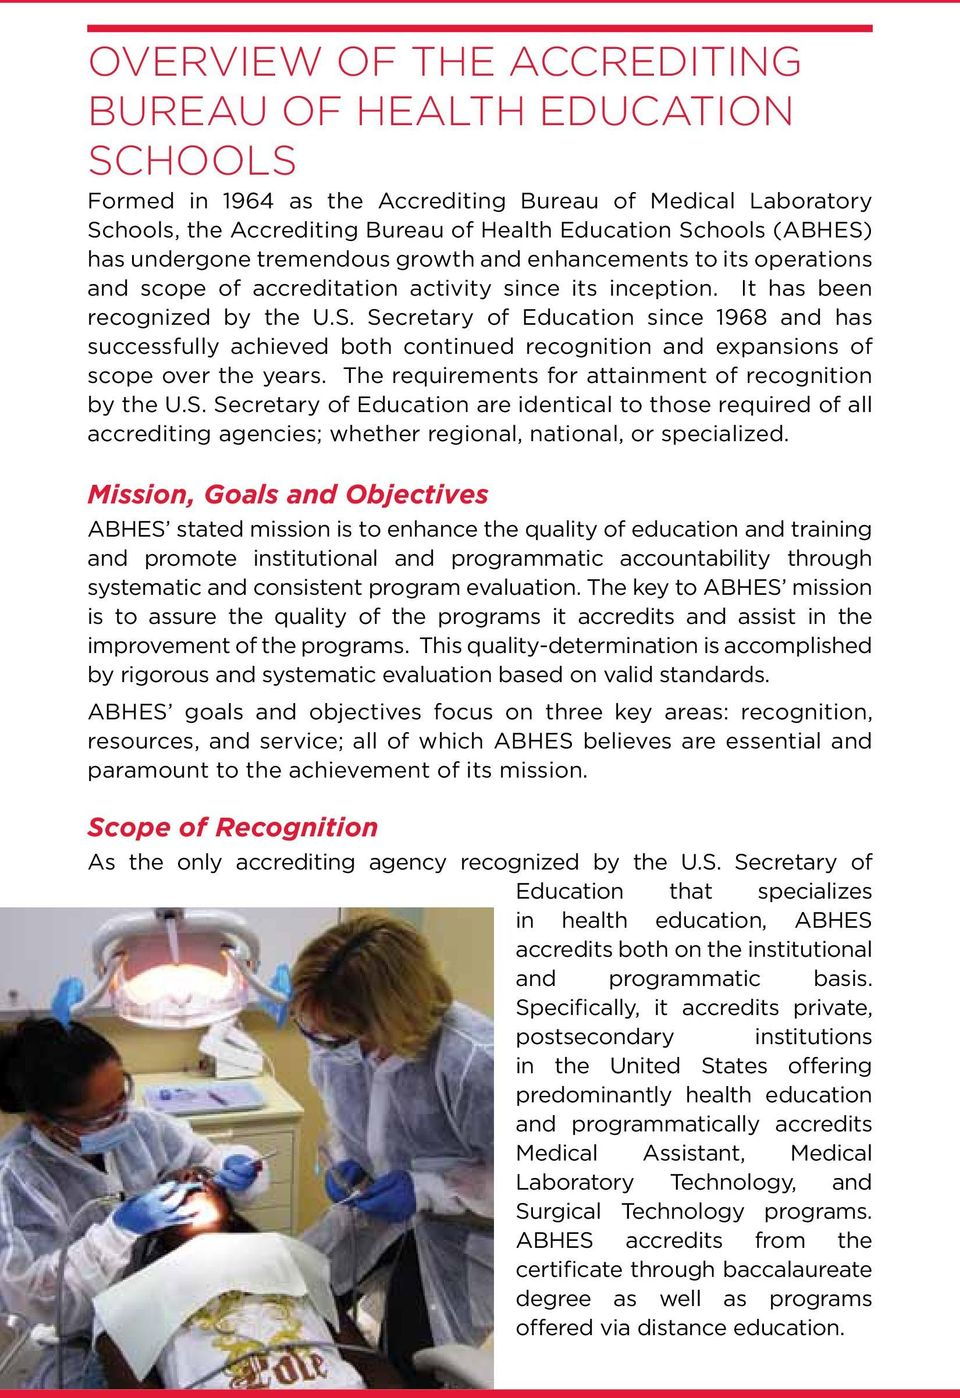 Secretary of Education since 1968 and has successfully achieved both continued recognition and expansions of scope over the years. The requirements for attainment of recognition by the U.S. Secretary of Education are identical to those required of all accrediting agencies; whether regional, national, or specialized.